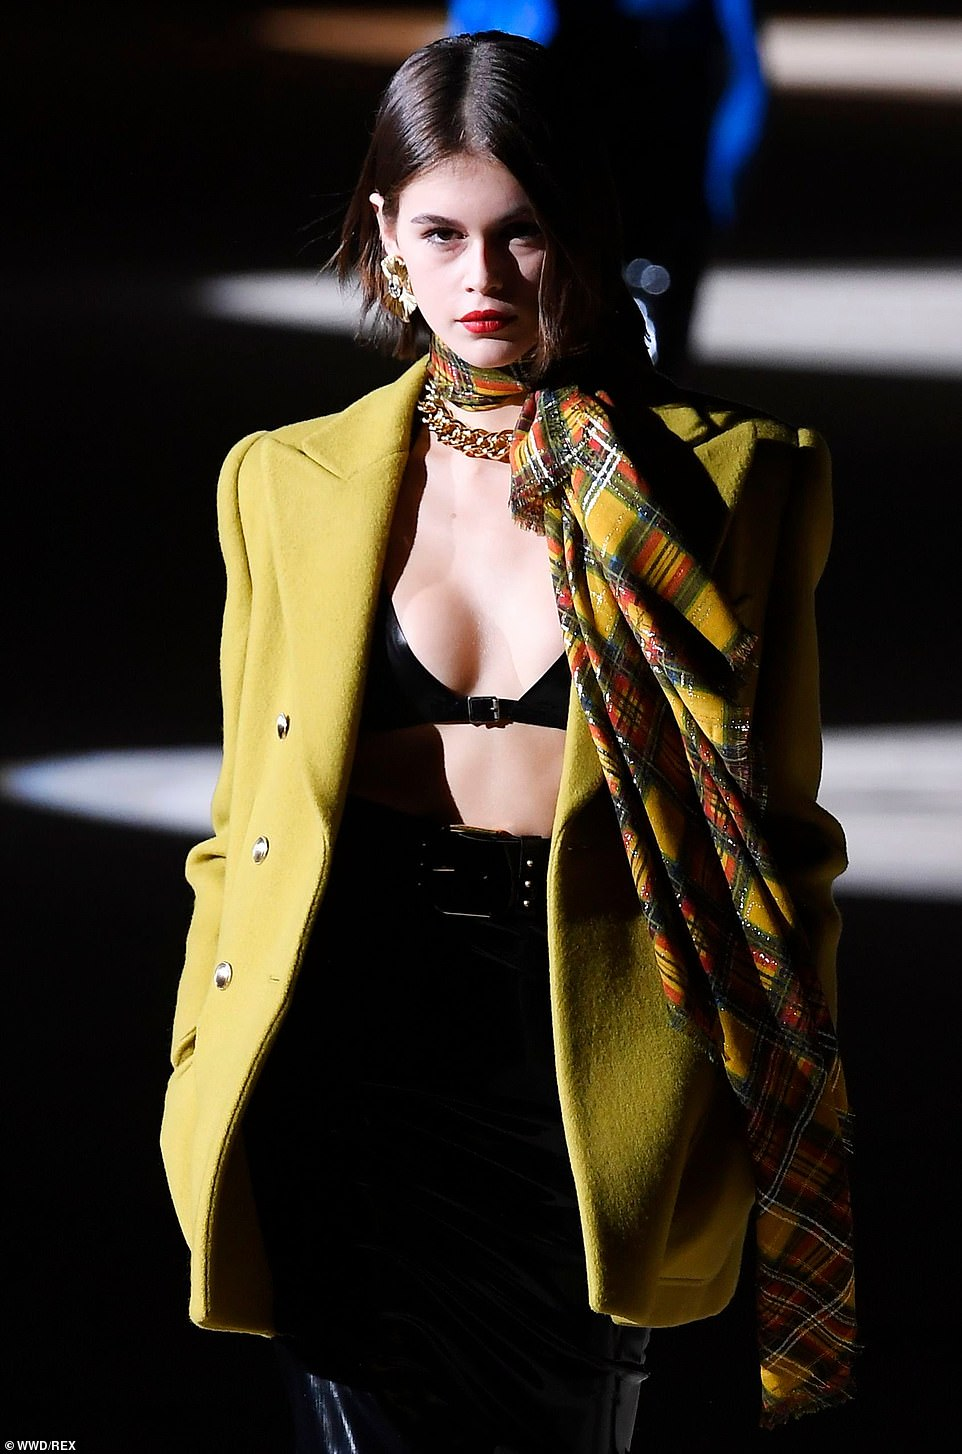 Kaia Gerber puts on a busty display in latex bra at the Saint Laurent Paris Fashion Week Show